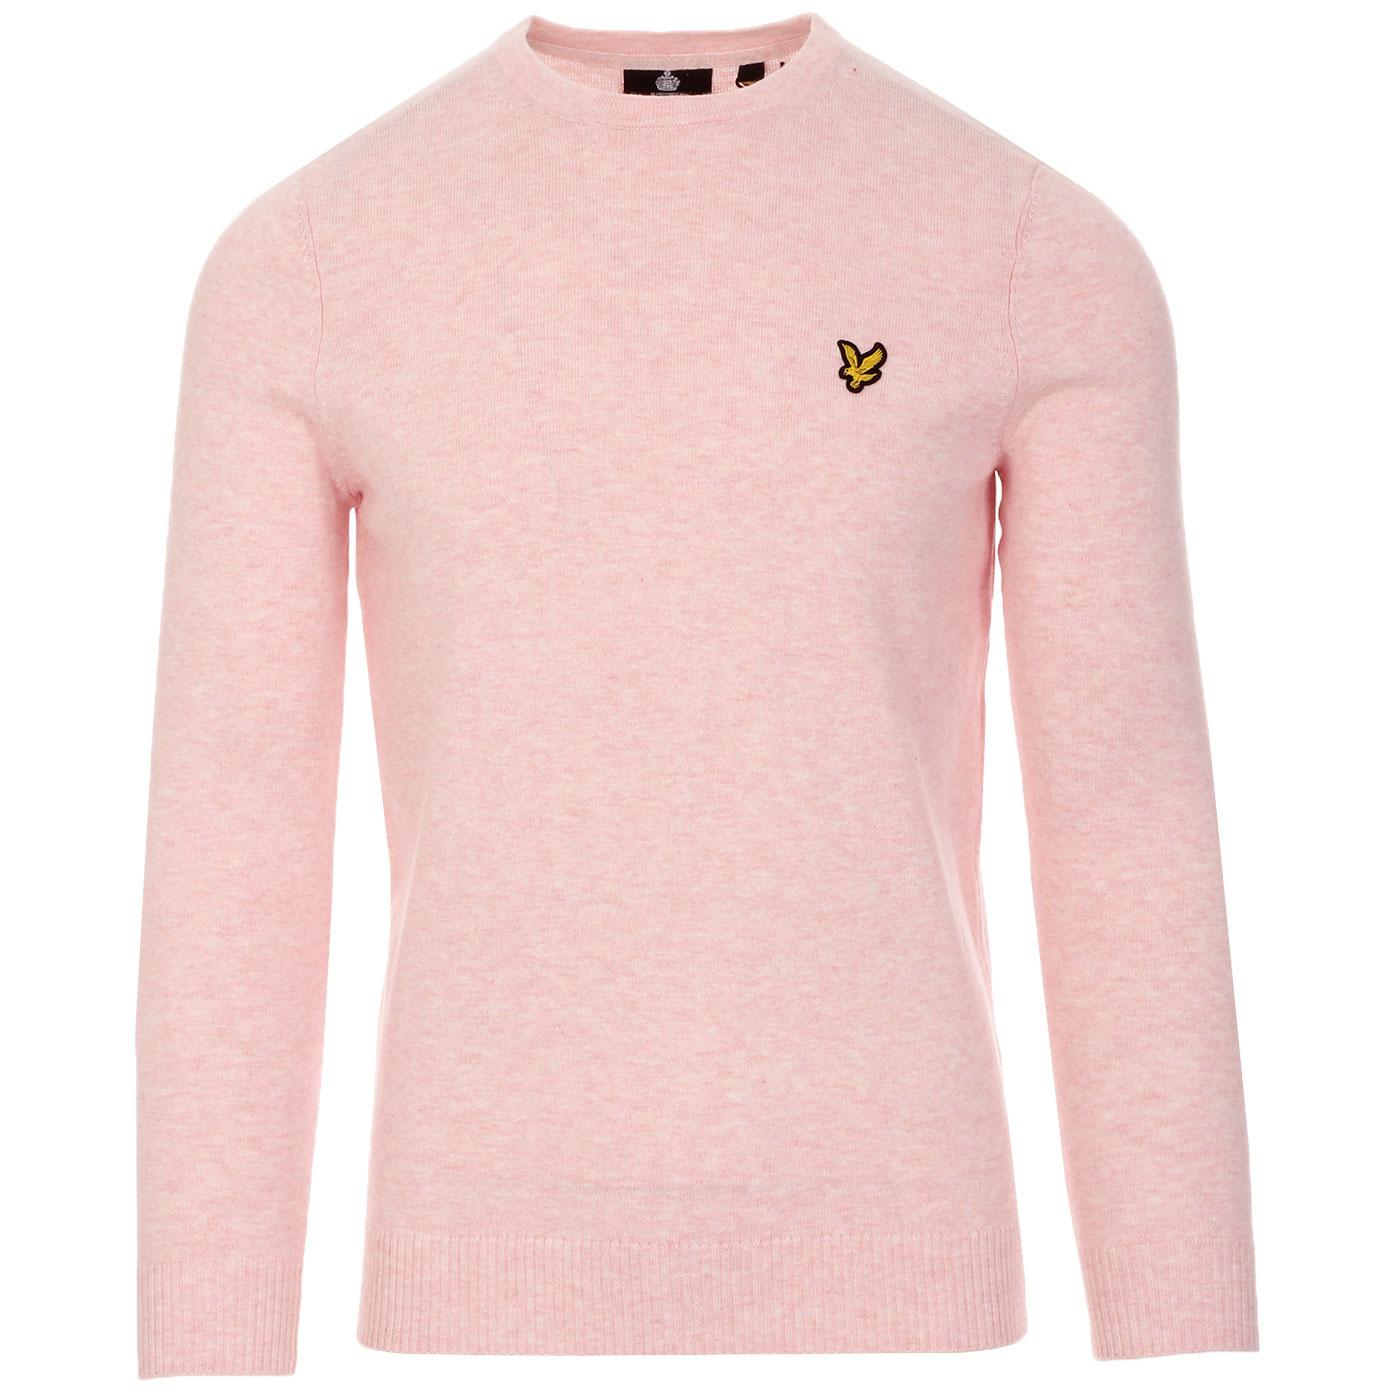 LYLE & SCOTT Cotton Merino Crew Neck Jumper (SPM)